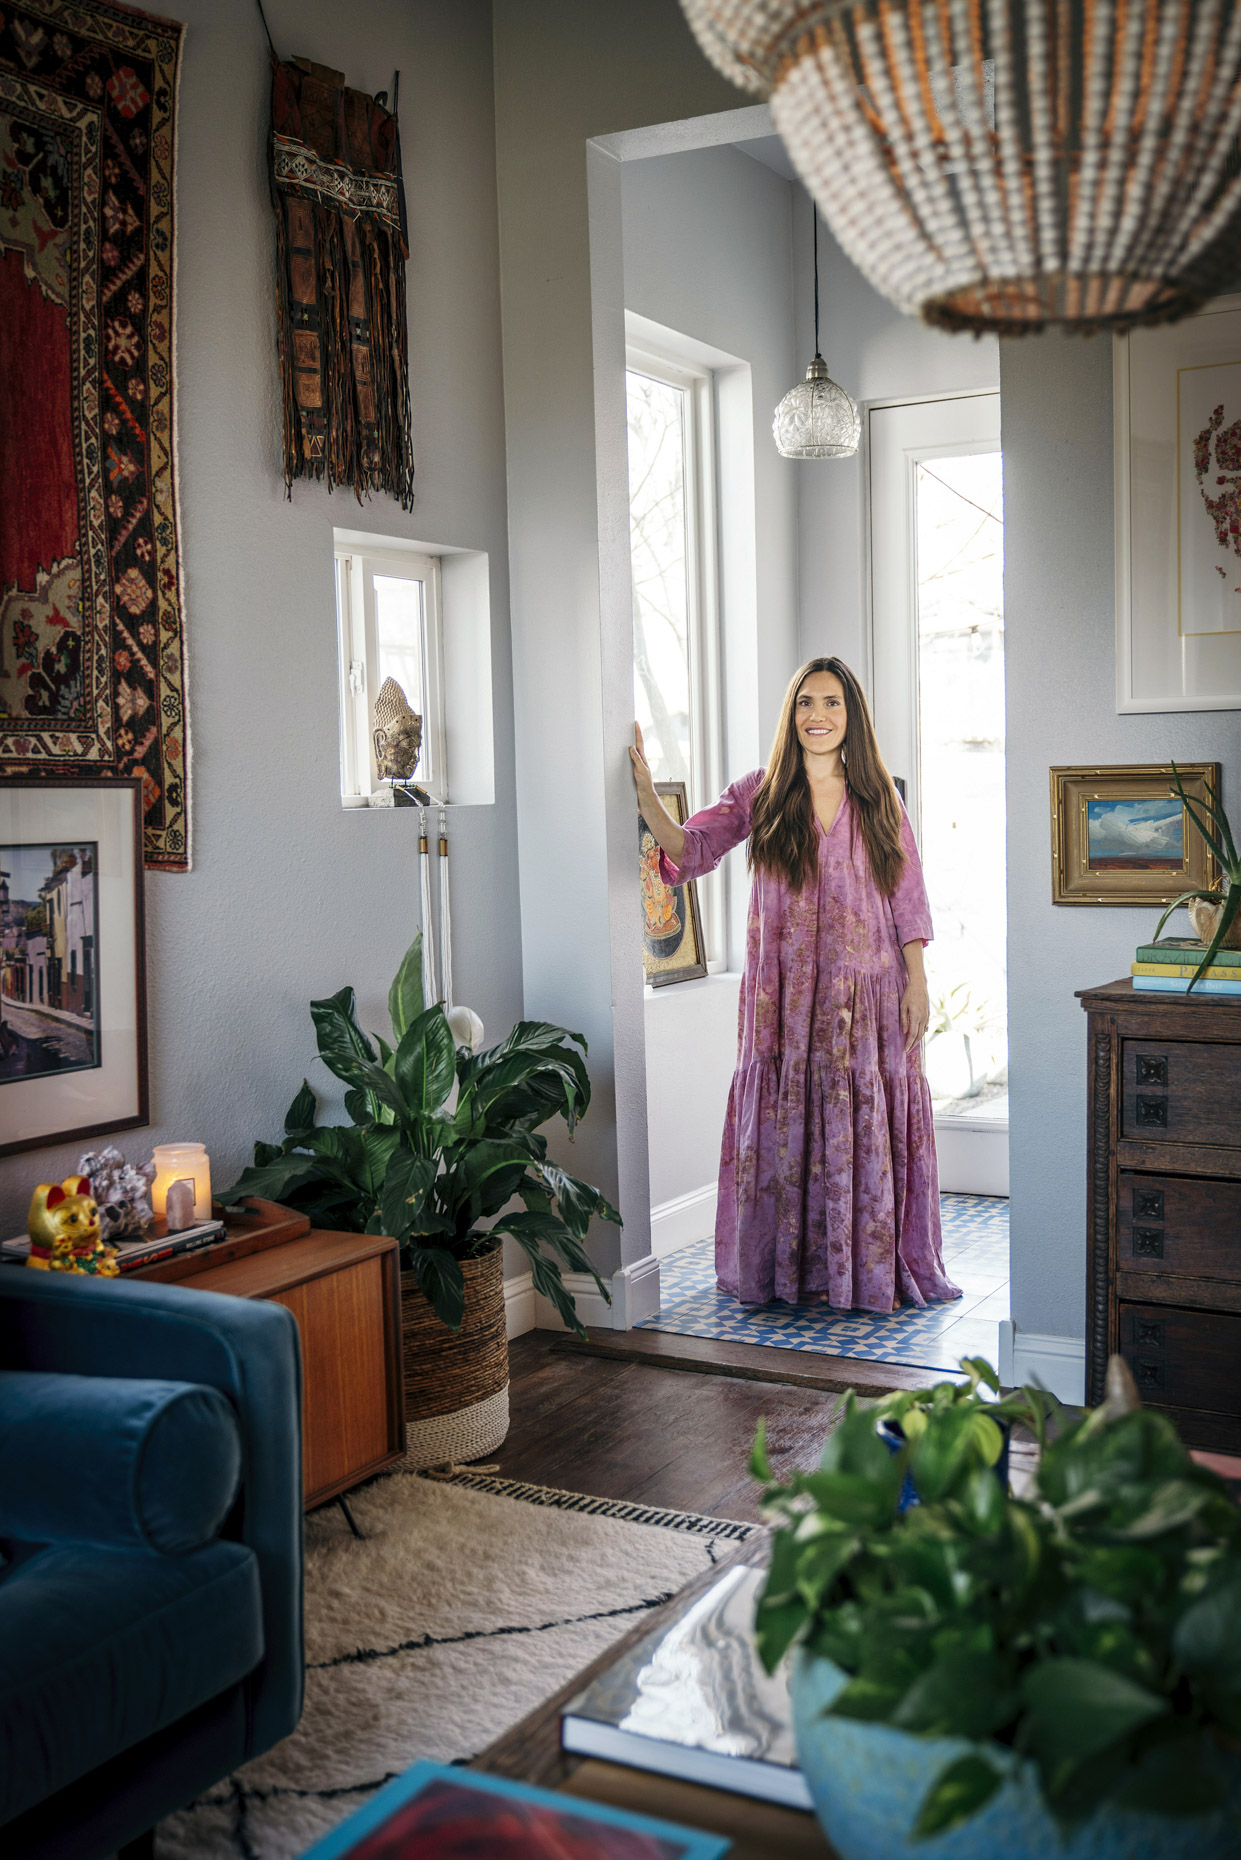 Portrait of woman in long pink dress in art-filled home